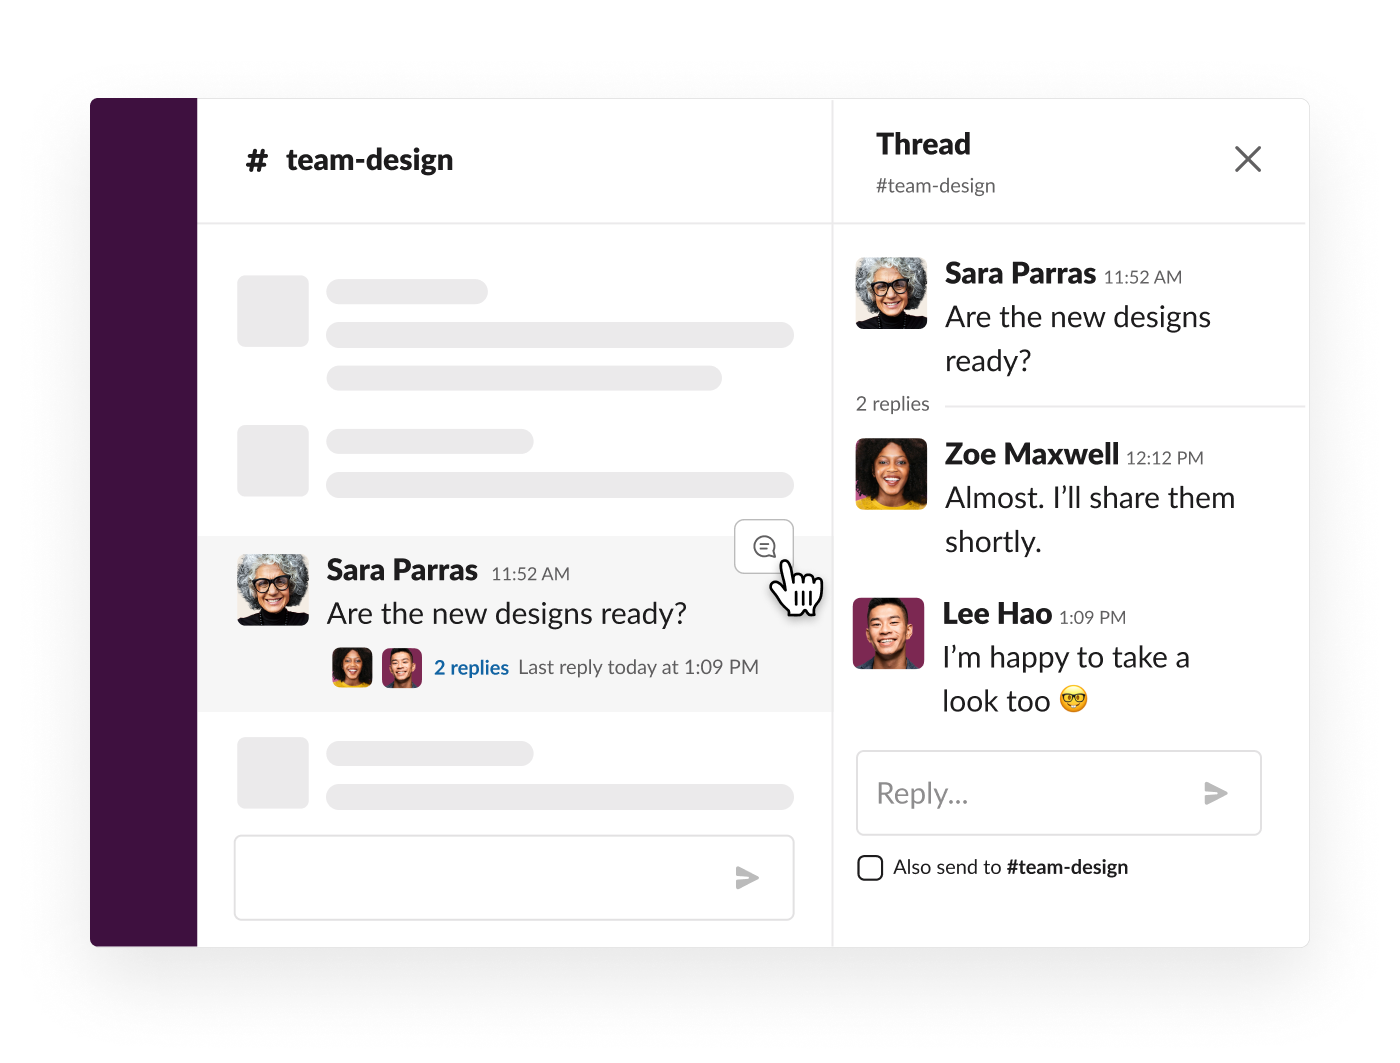 A thread to keep discussion organized in Slack